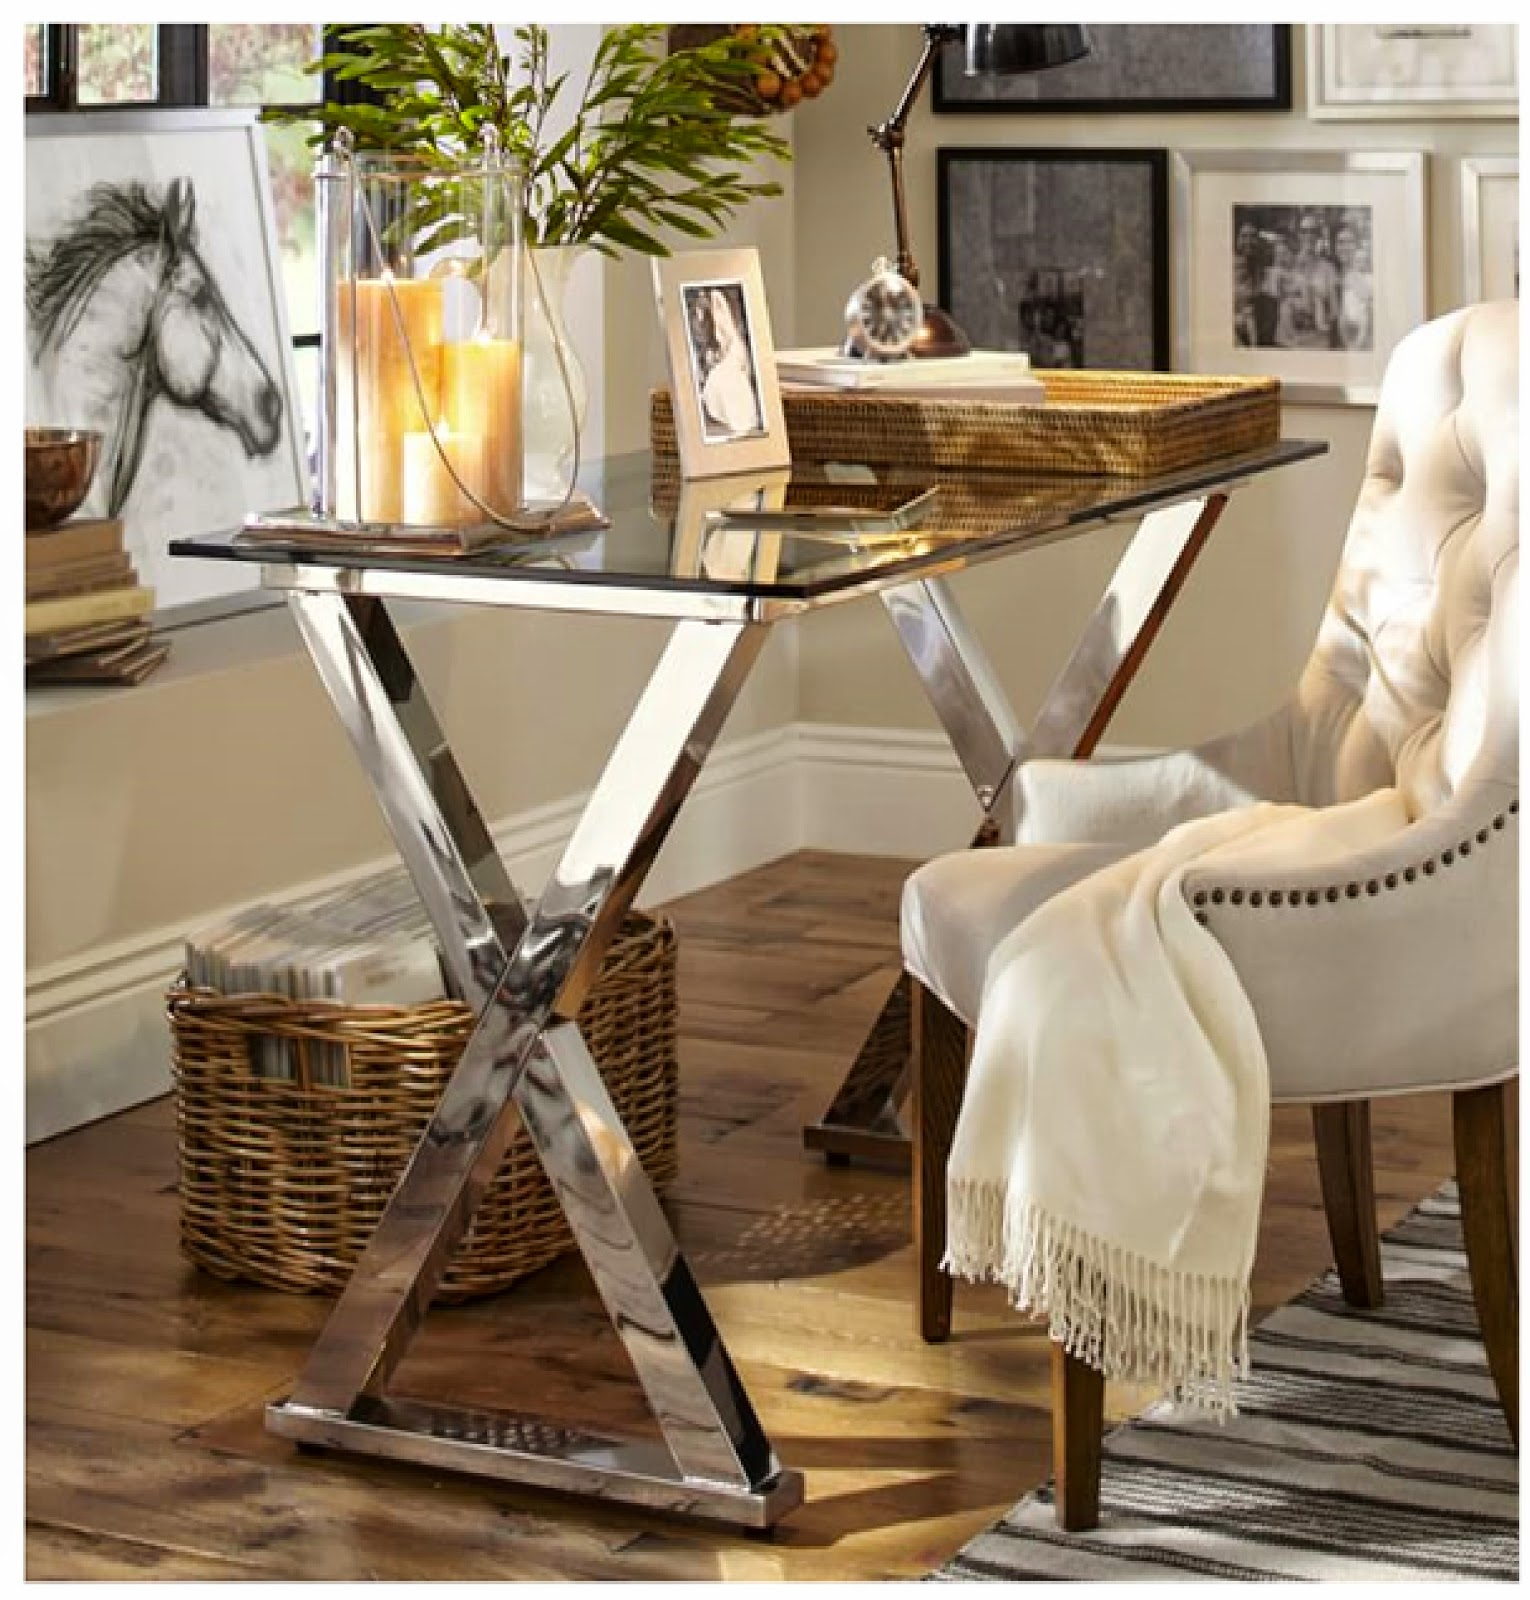 This Is The Ava Metal Desk And Can Also Be Found At Pottery Barn Only Real Difference In Portion As Legs